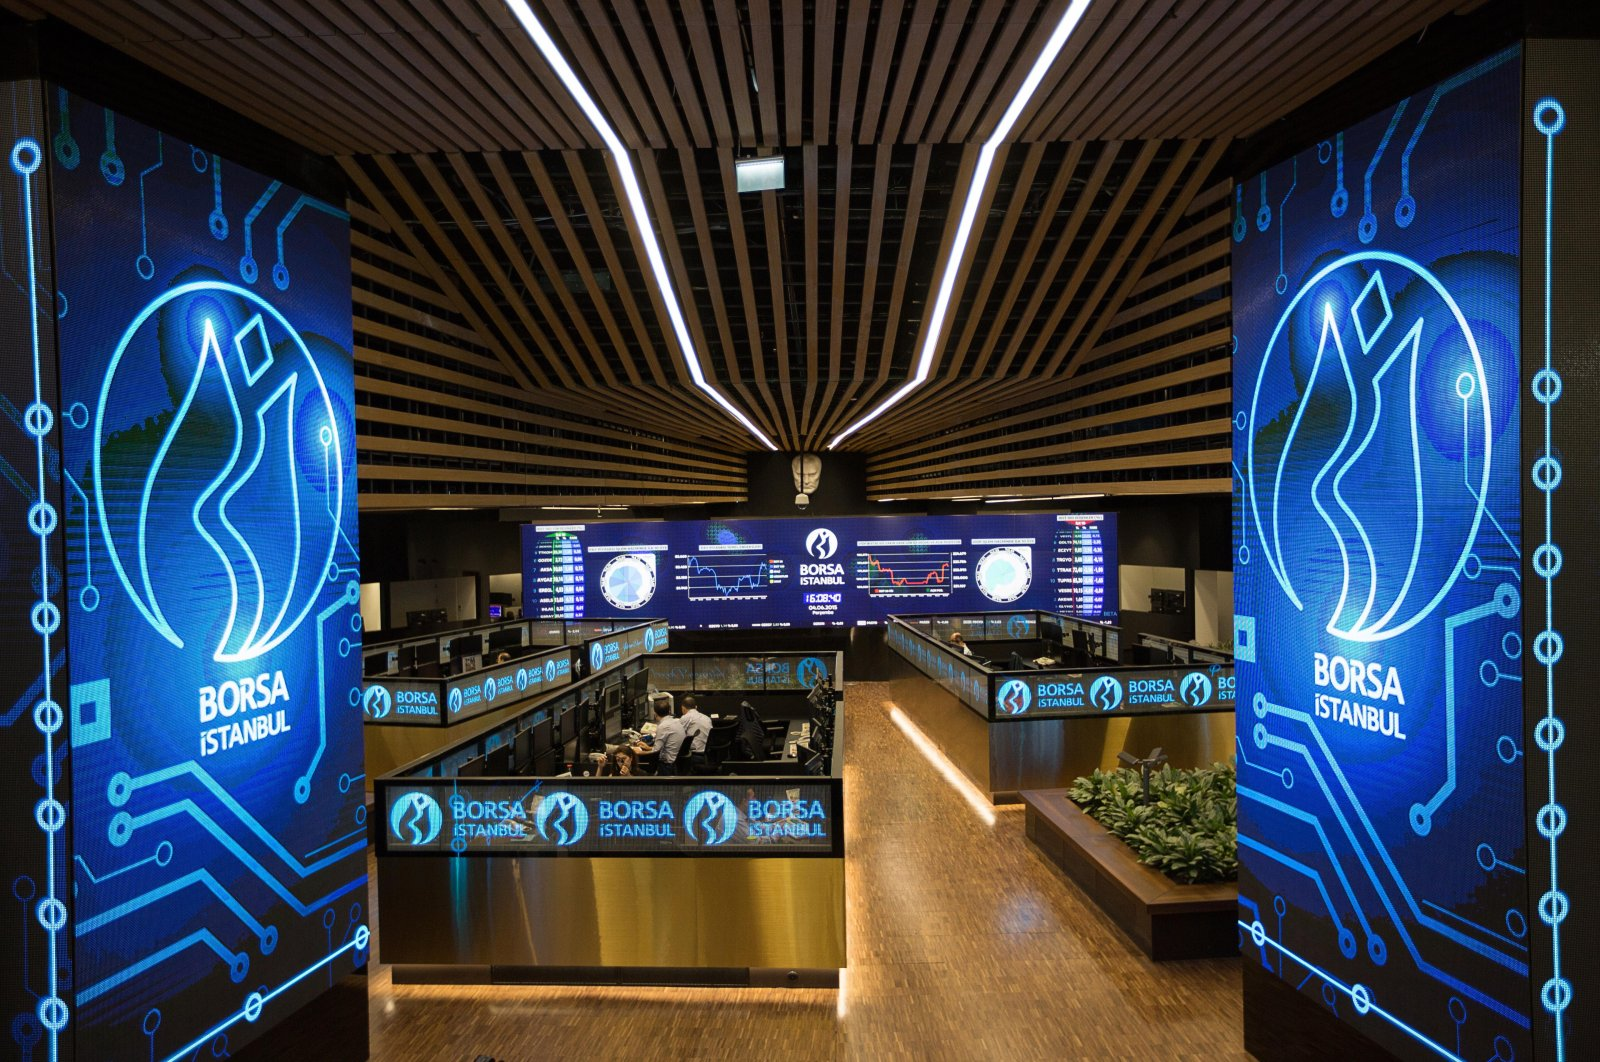 This undated file photo shows the main trading floor of the Borsa Istanbul stock exchange, in Istanbul. (IHA Photo)